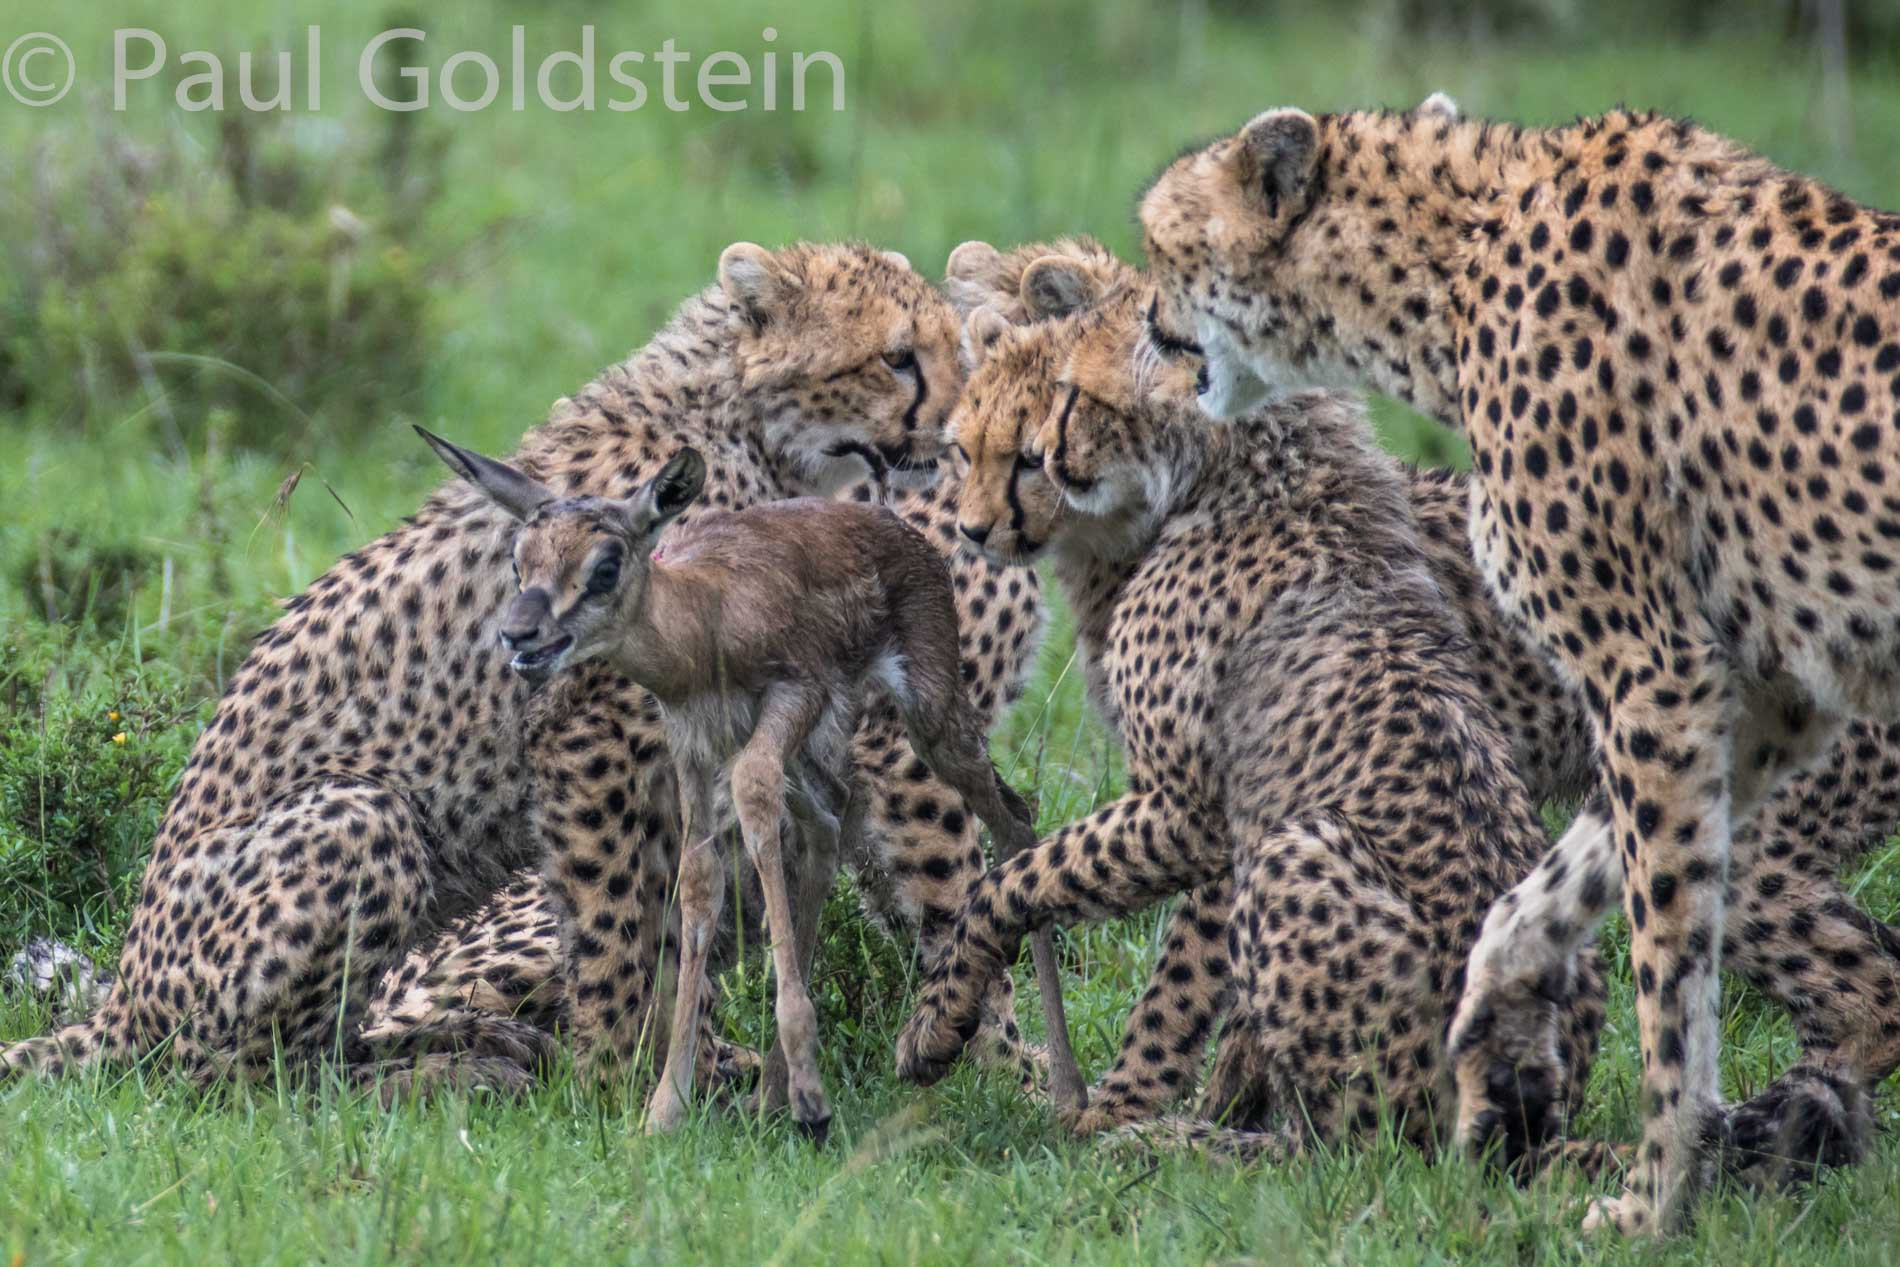 Cheetah family in the Masai Mara (June 2015)